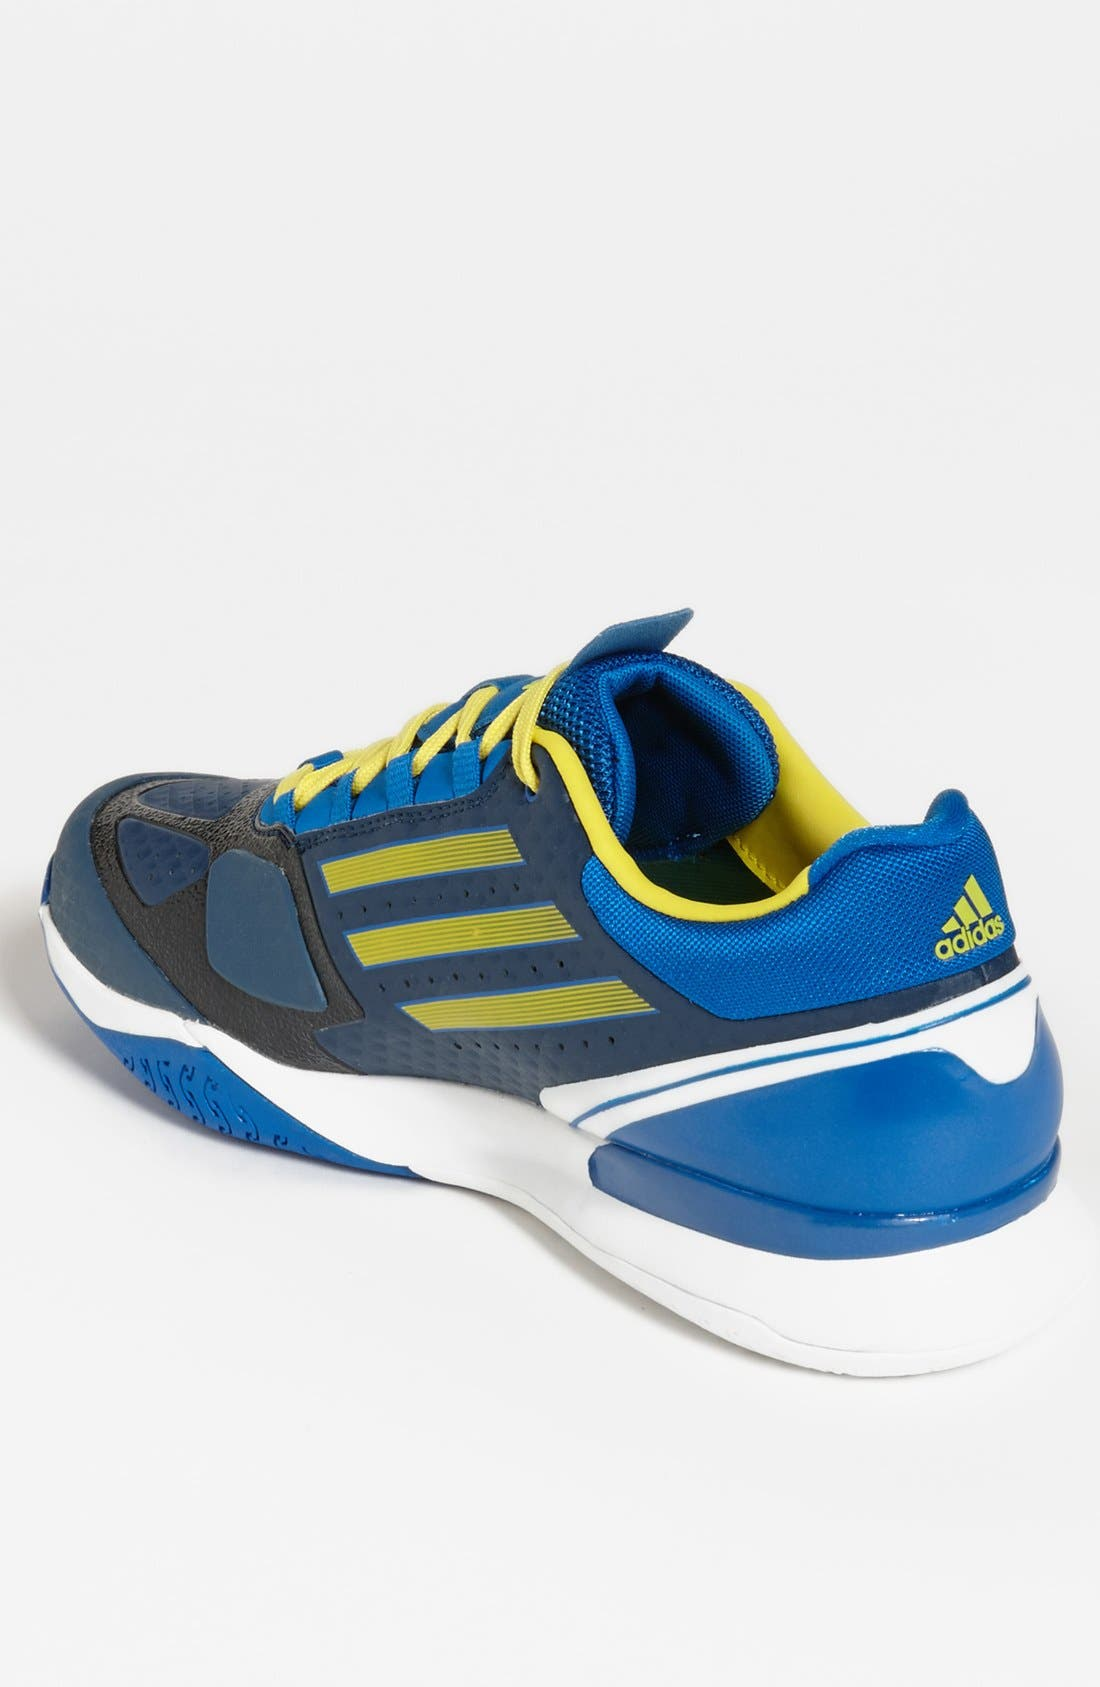 Alternate Image 2  - adidas 'adizero Feather II' Tennis Shoe (Men)